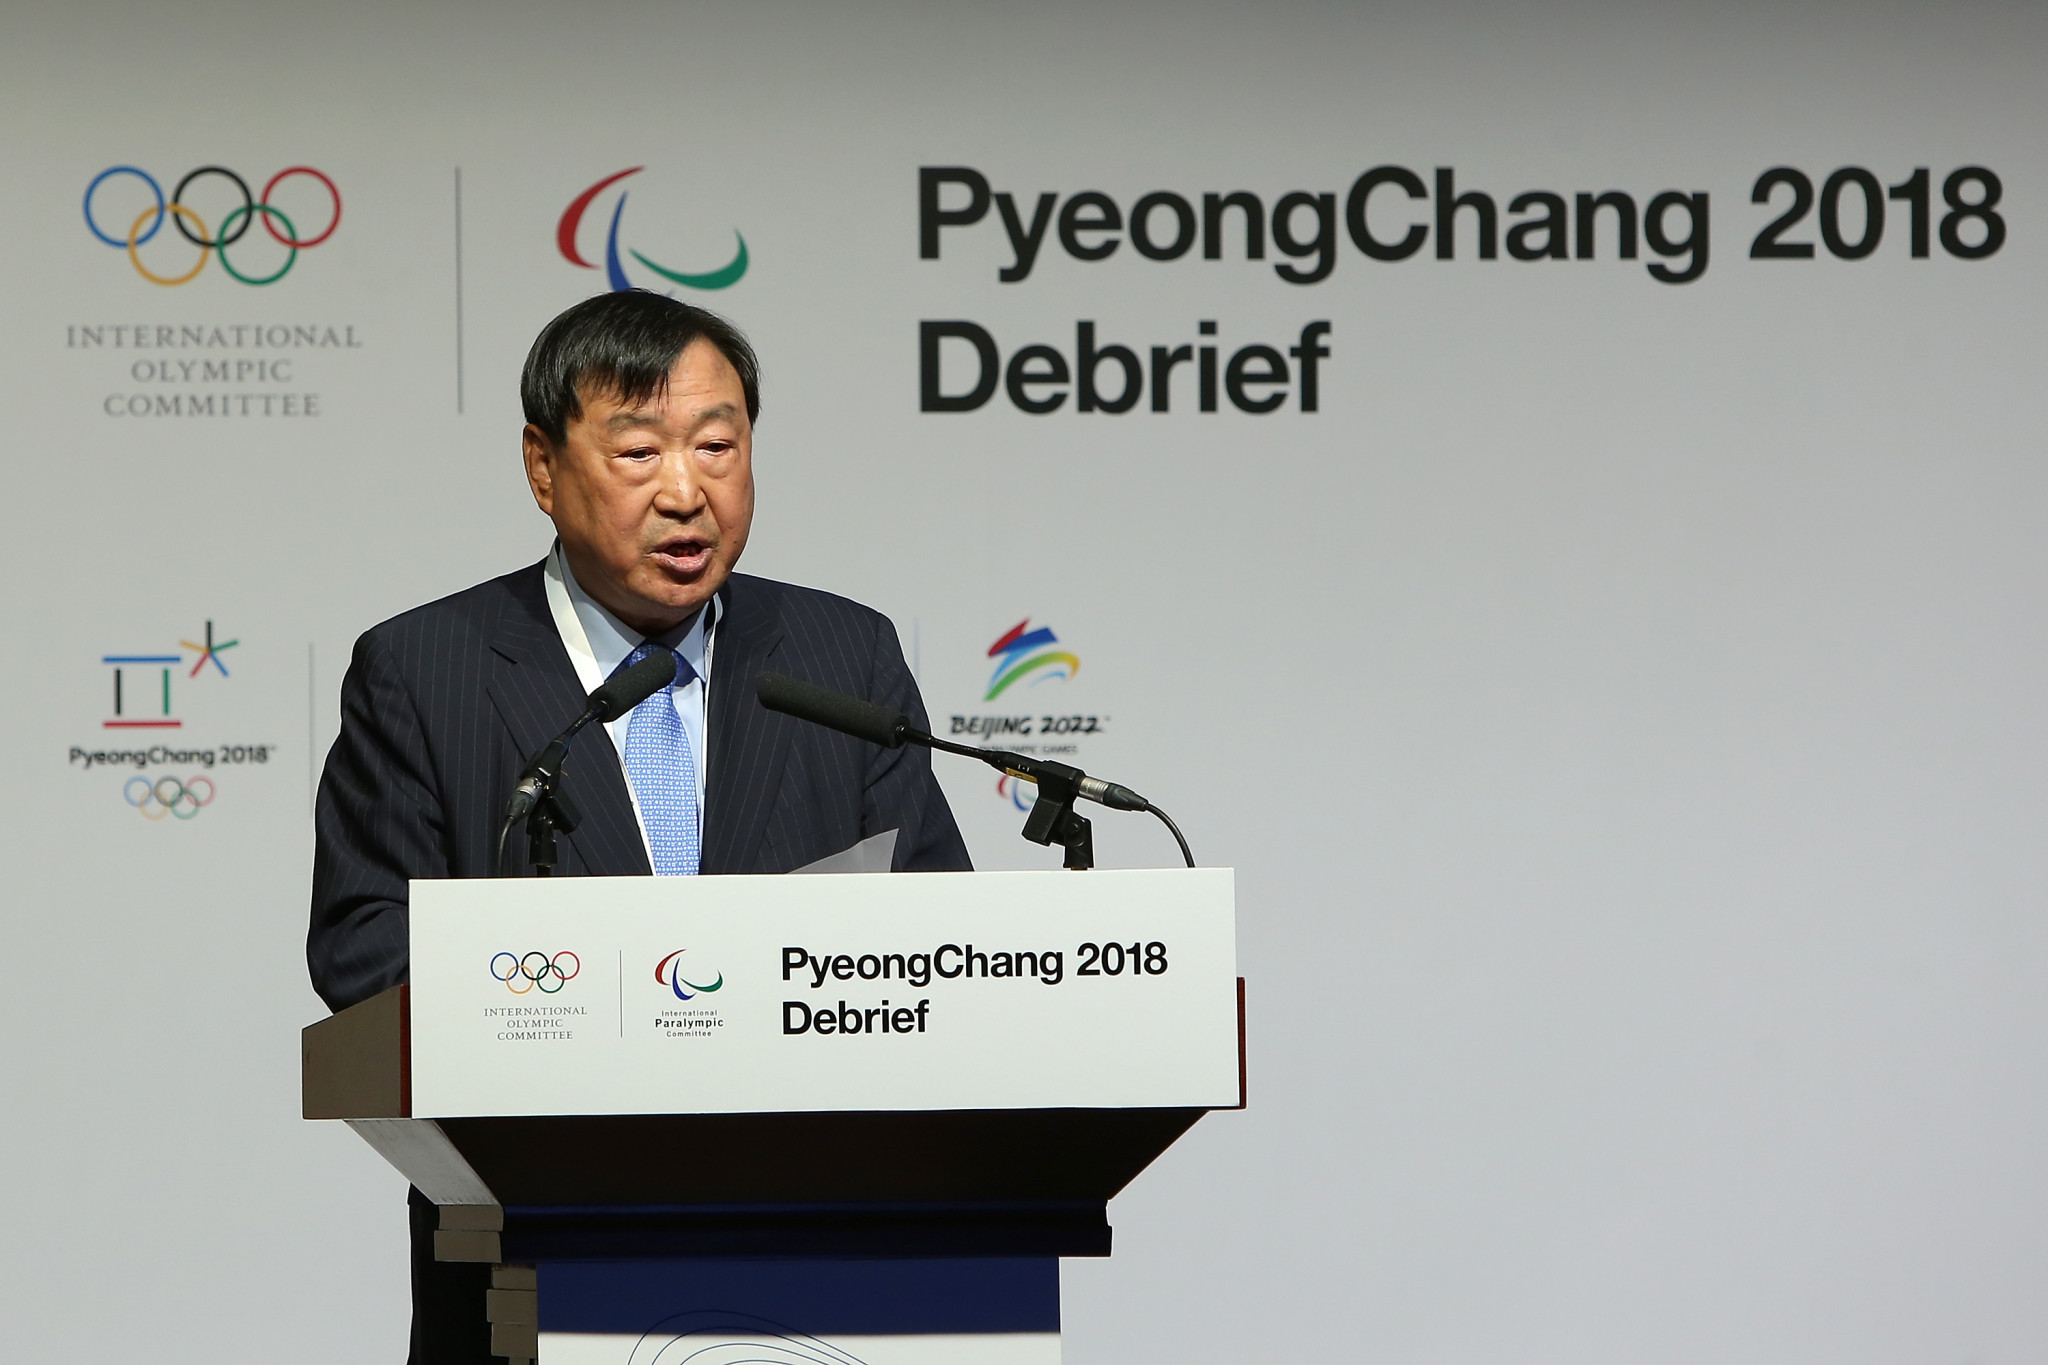 Pyeongchang 2018 President praises Beijing 2022 and predicts profitable Winter Olympics